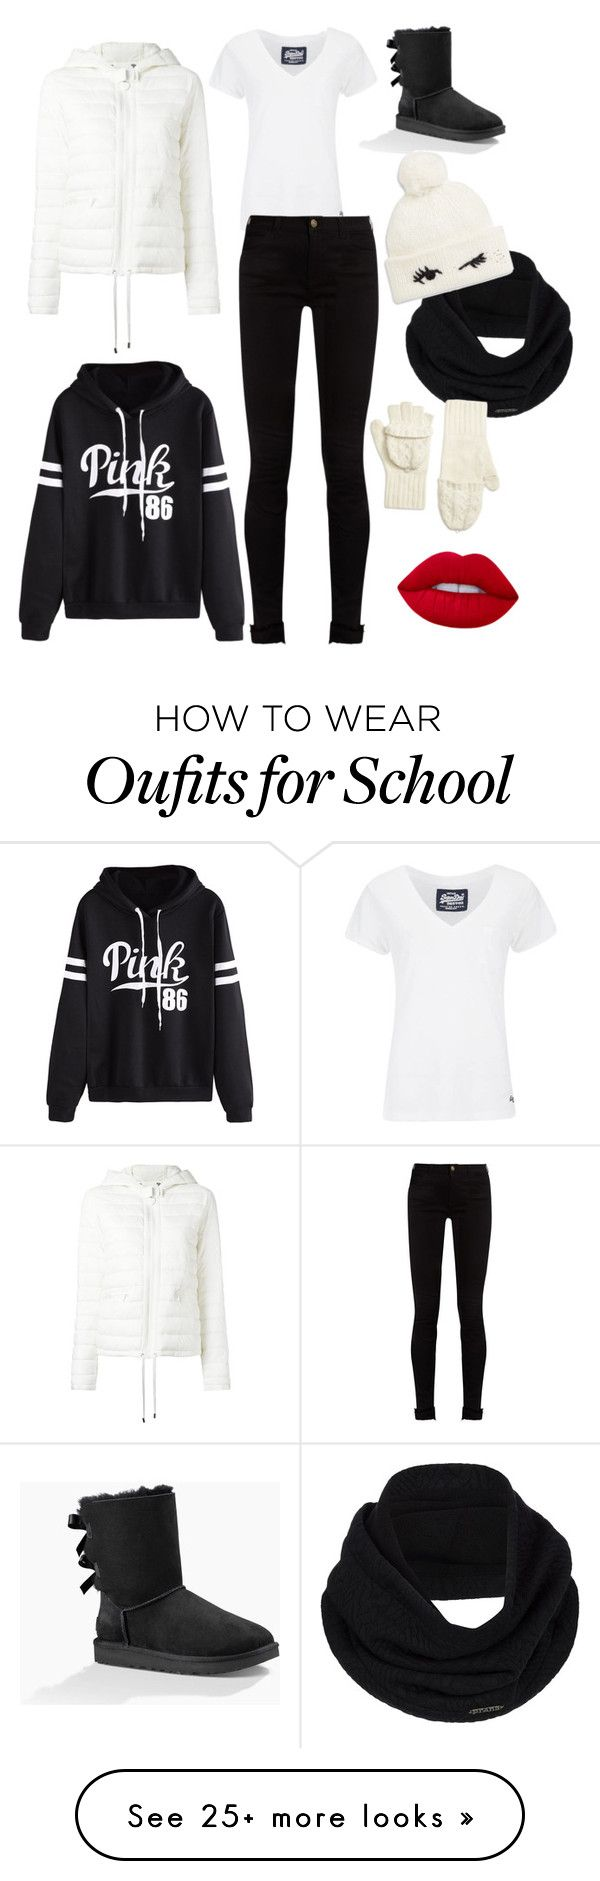 """Old School Winter Fun"" by yolokia on Polyvore featuring UGG Australia, WithChic, Twin-Set, Superdry, Gucci, prAna, Brooks Brothers and Kate Spade"